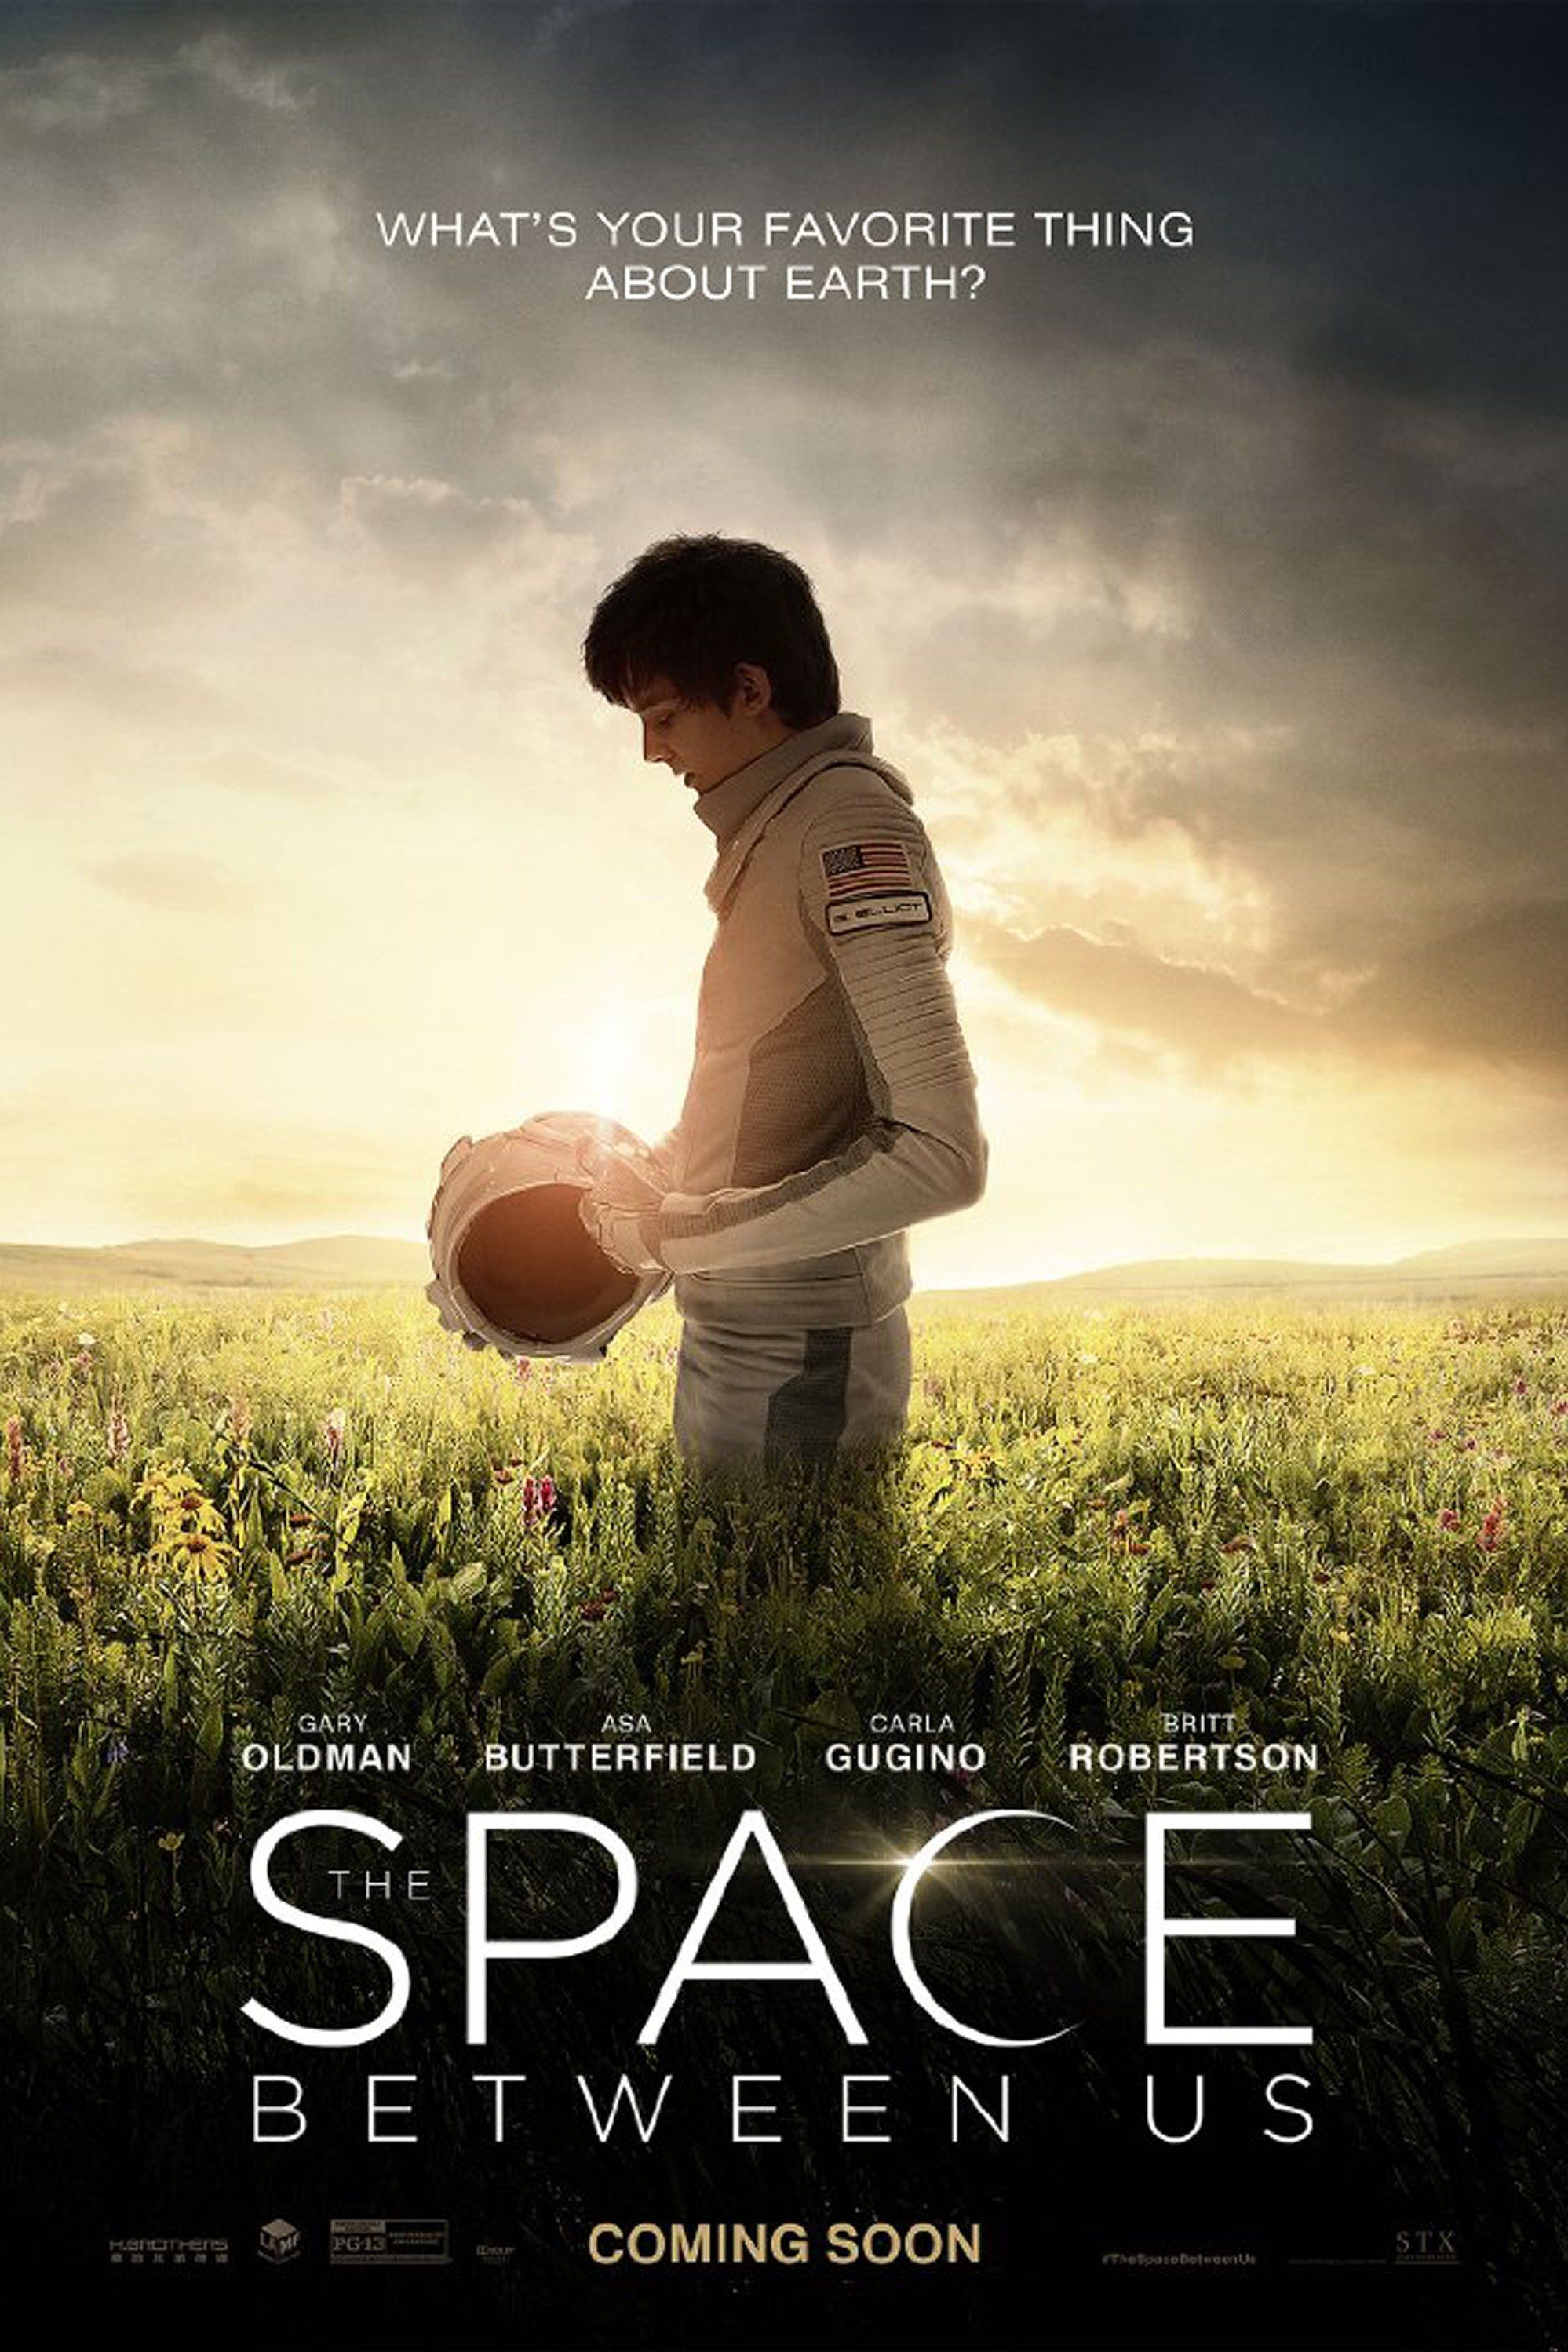 The Space Between Us Trailer A Martian Born Teenager Explores